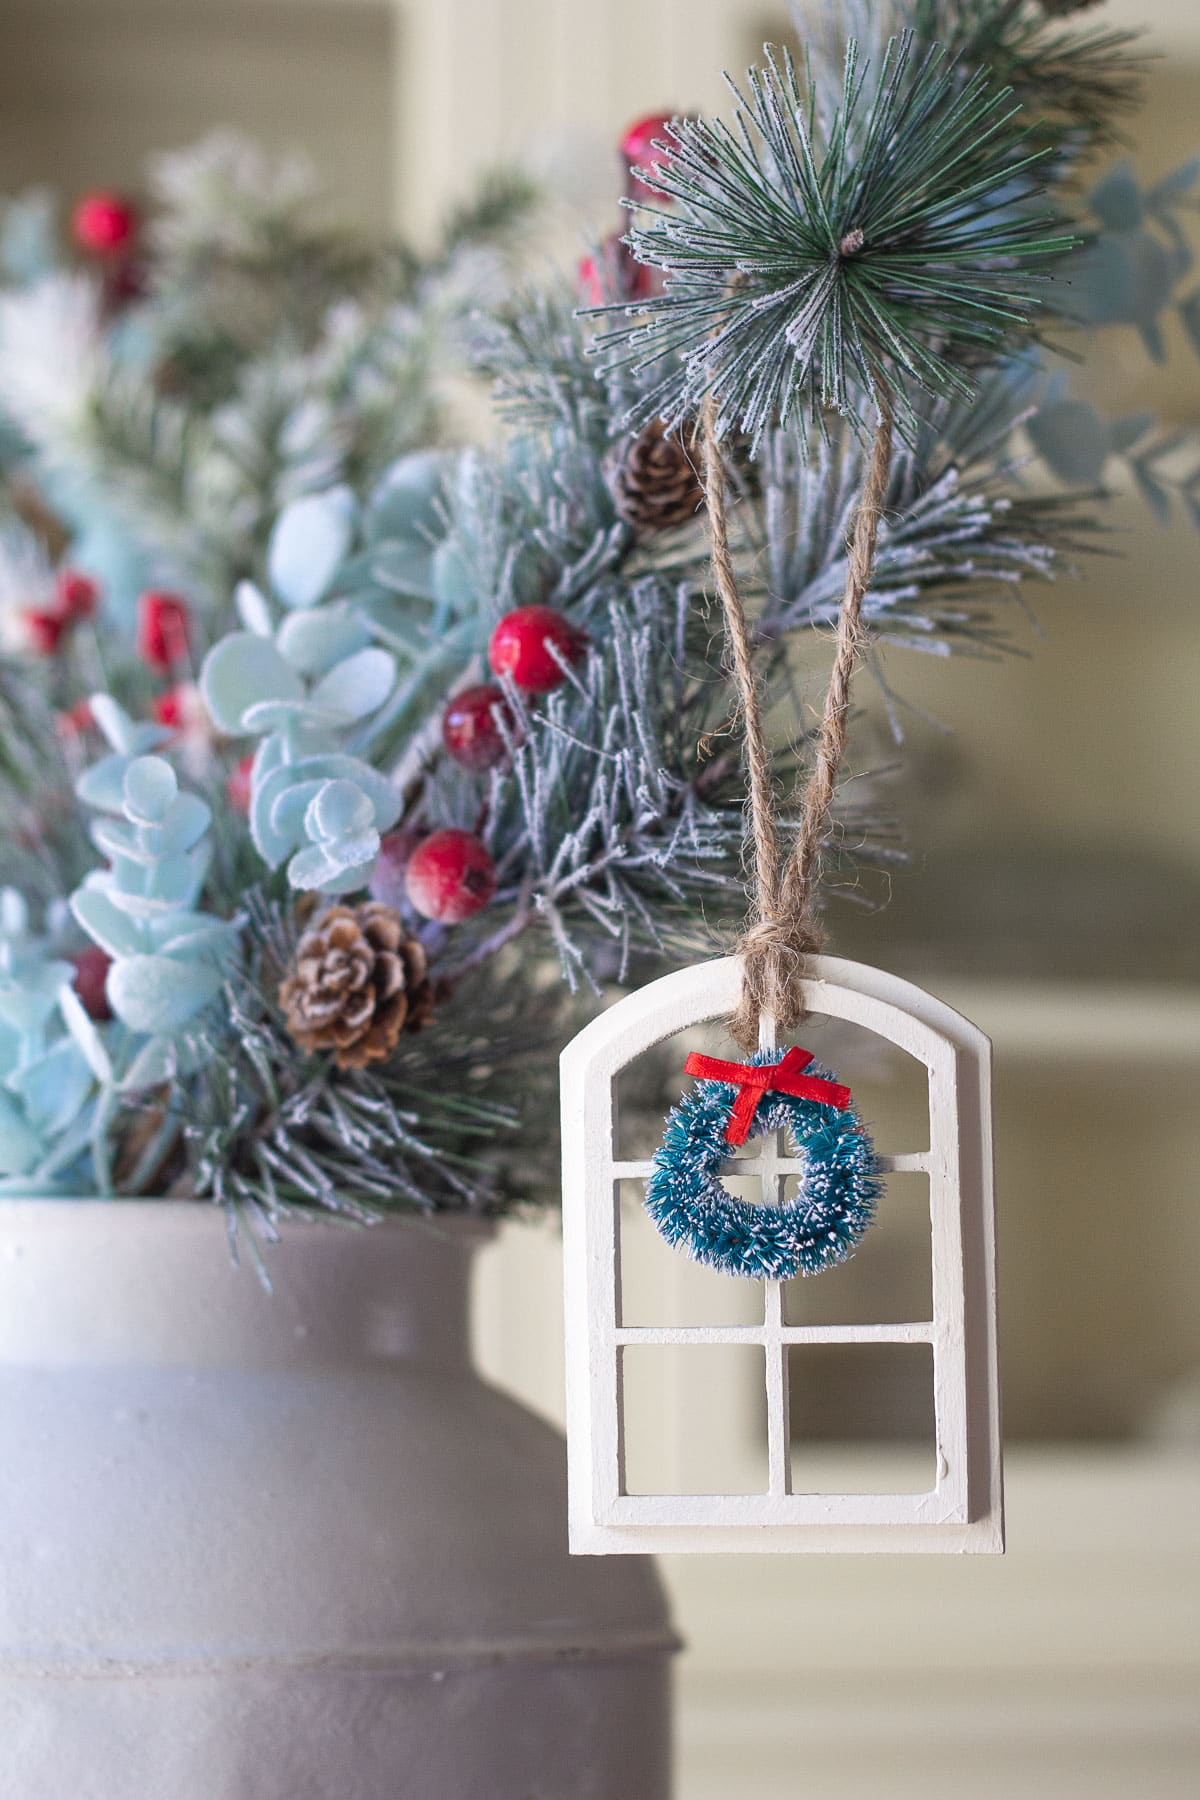 A Christmas ornament hanging from a pine bough.